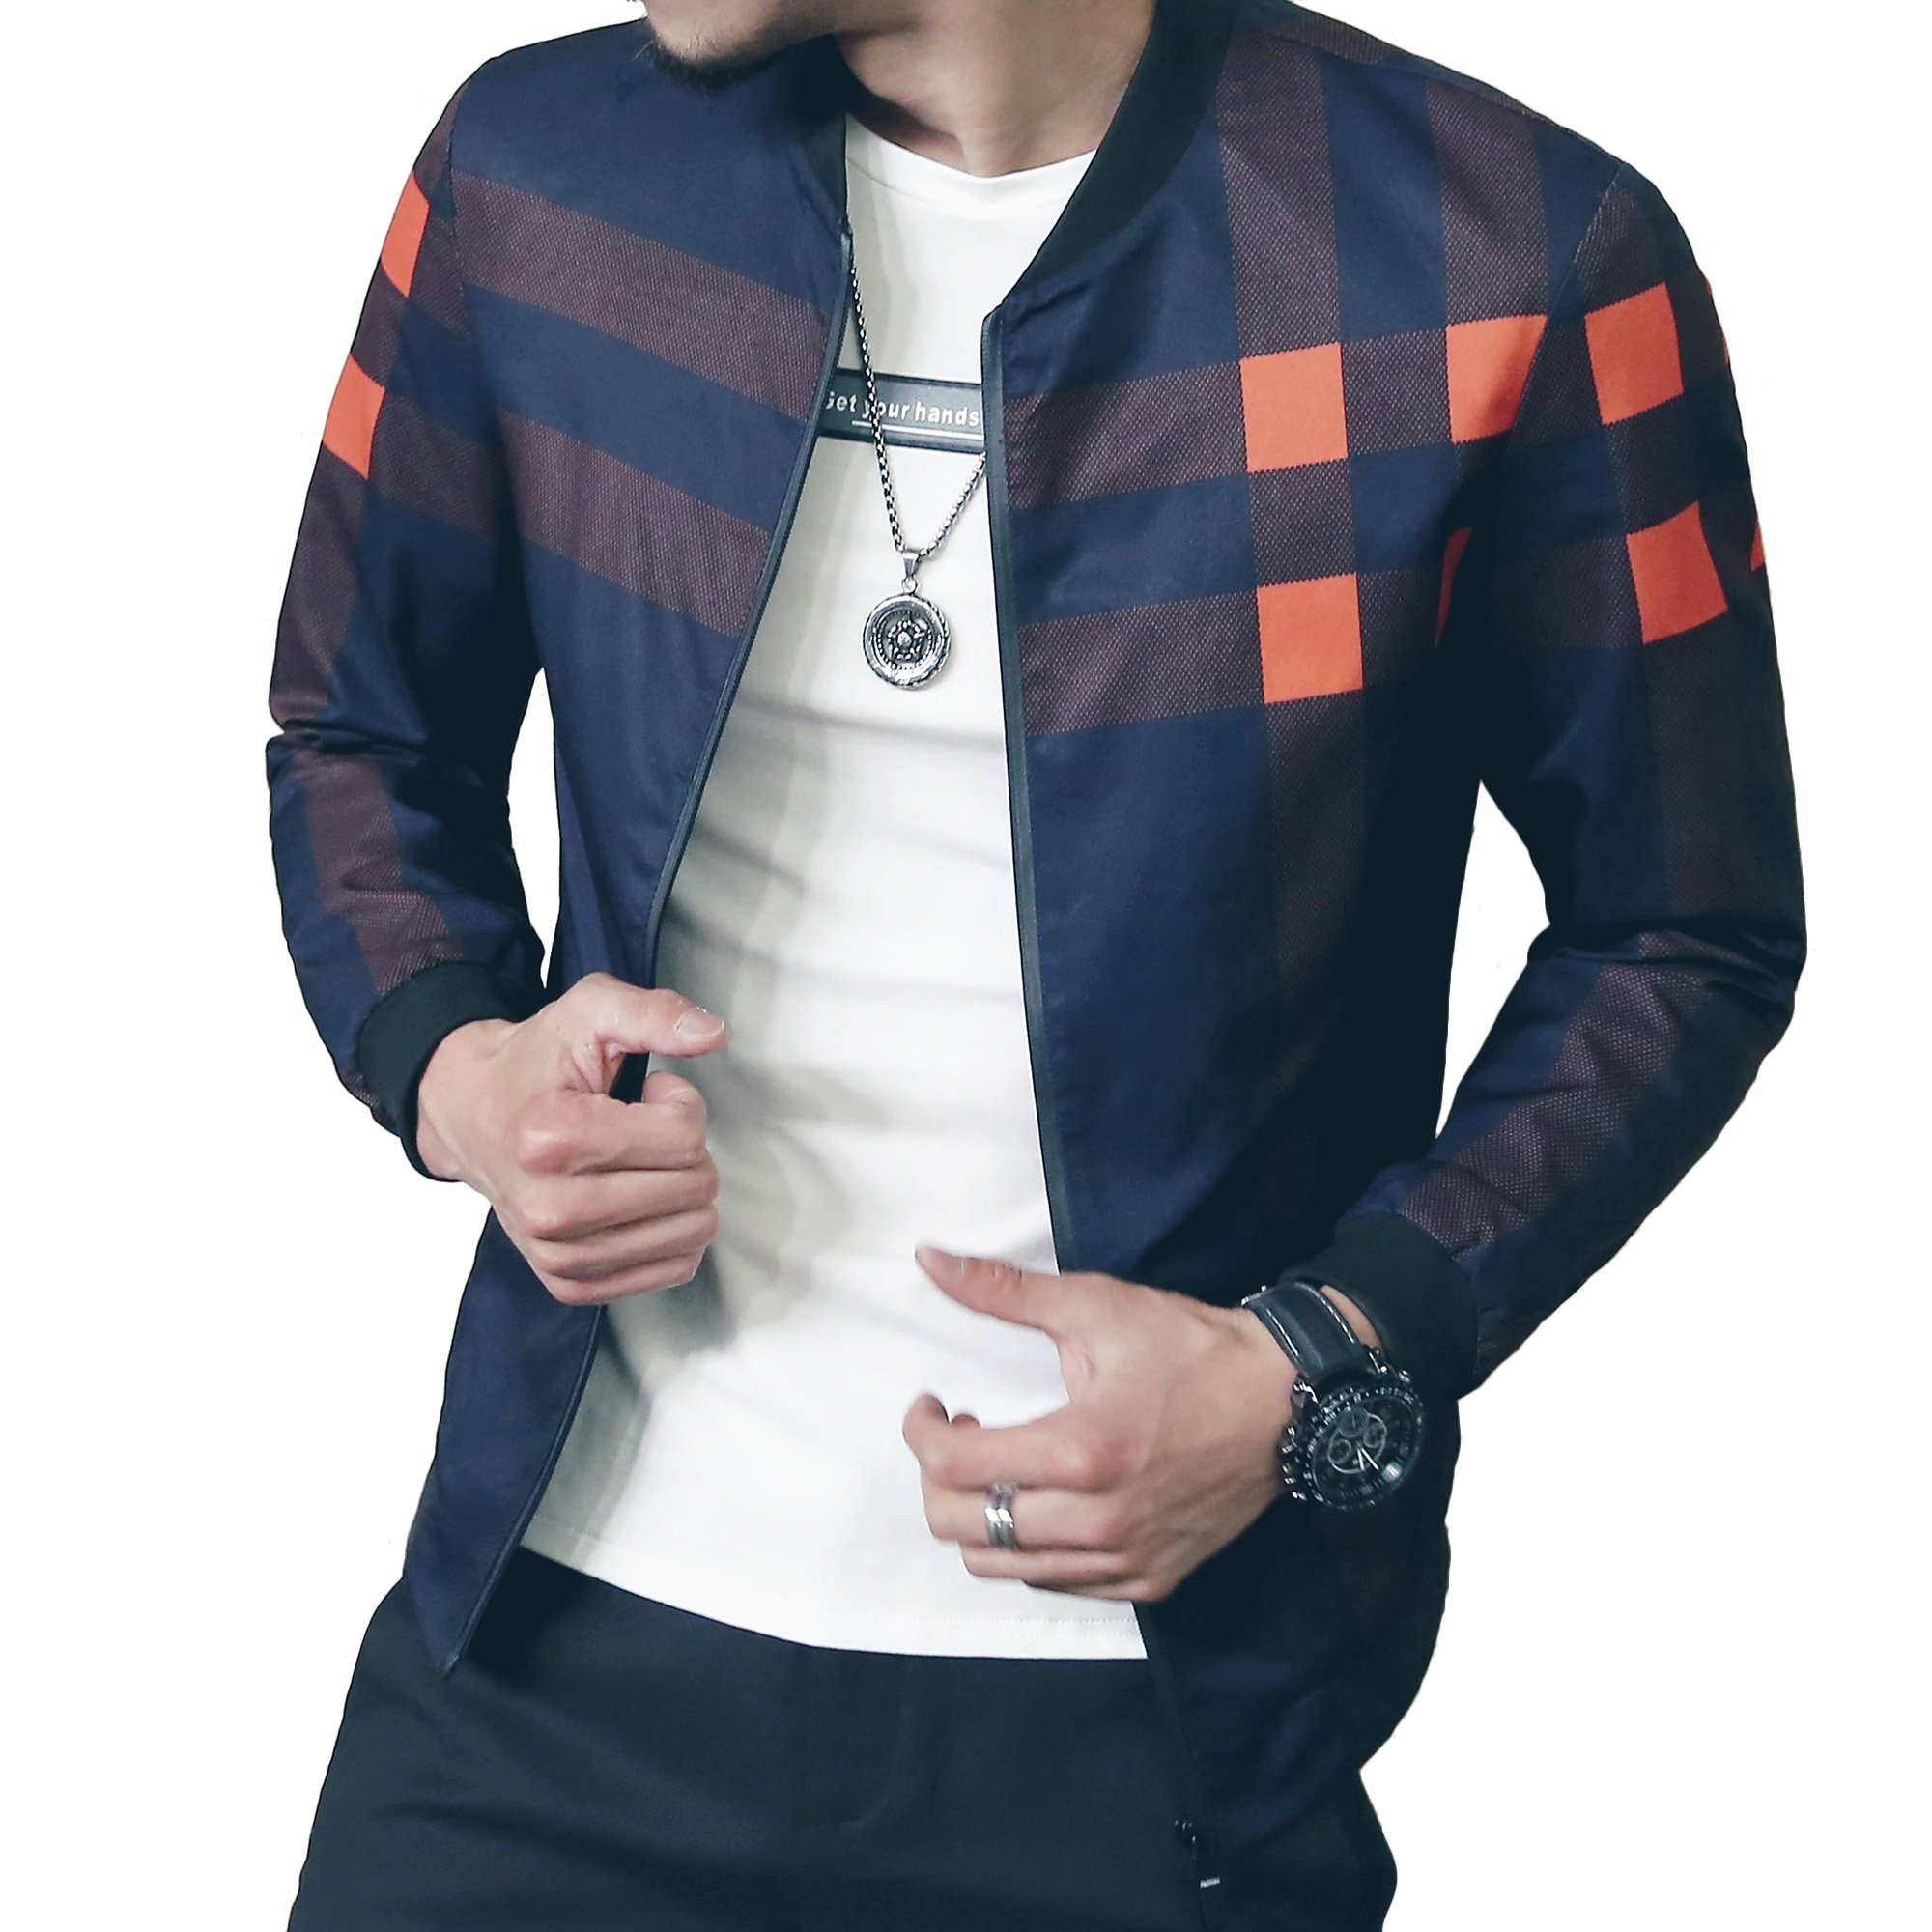 LOGEEYAR Men's Bomber Jacket Casual Slim Fit Printed Outerwear Coat(Blue orange-M)